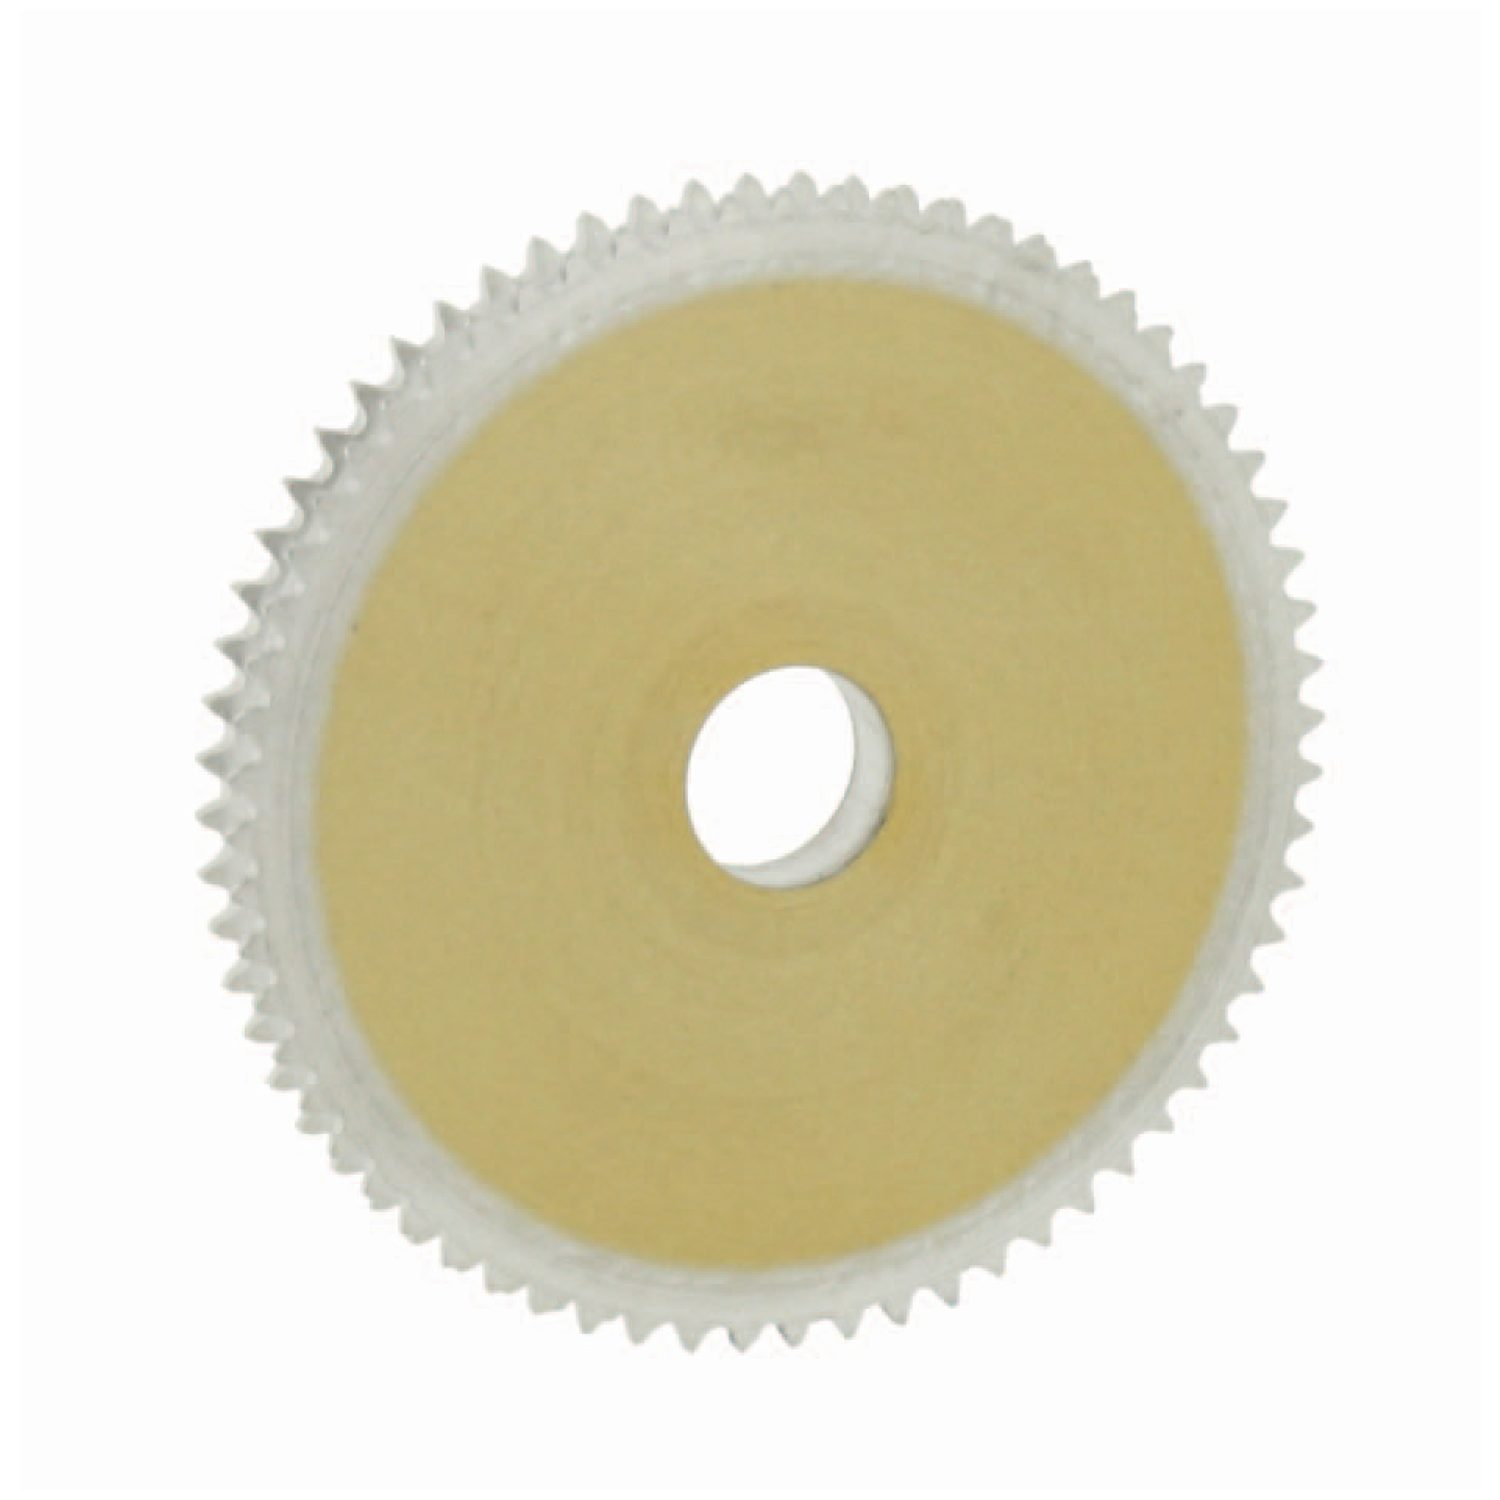 R1043 - Hubless Double Sprockets